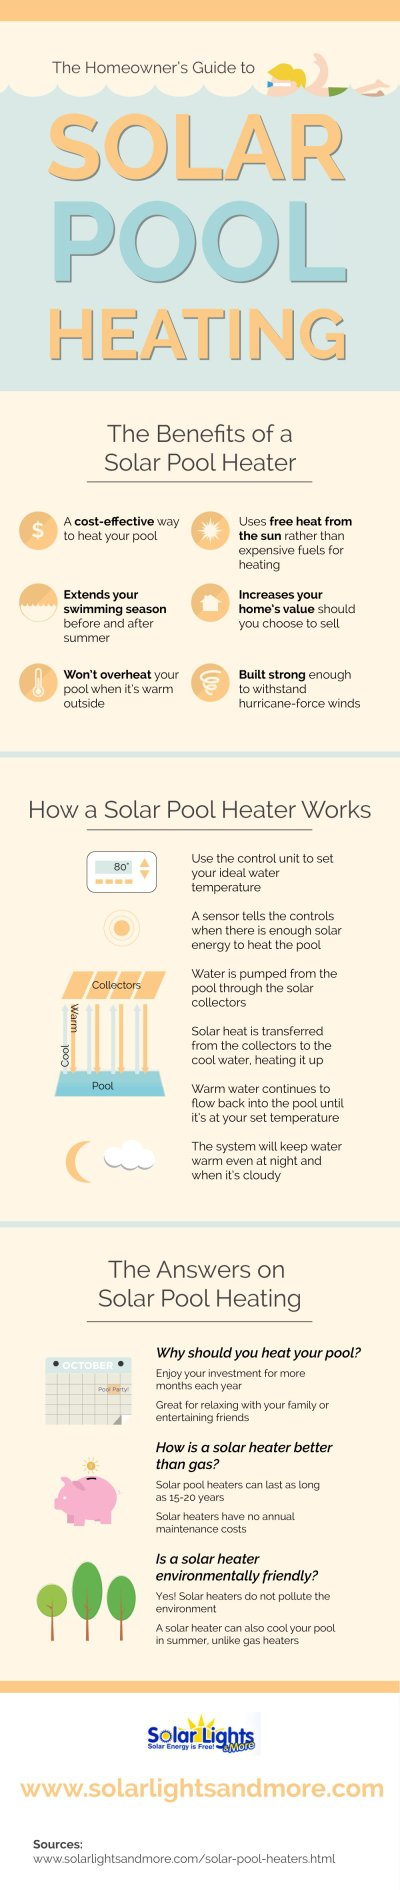 The Homeowner's Guide to Solar Pool Heating [INFOGRAPHIC]